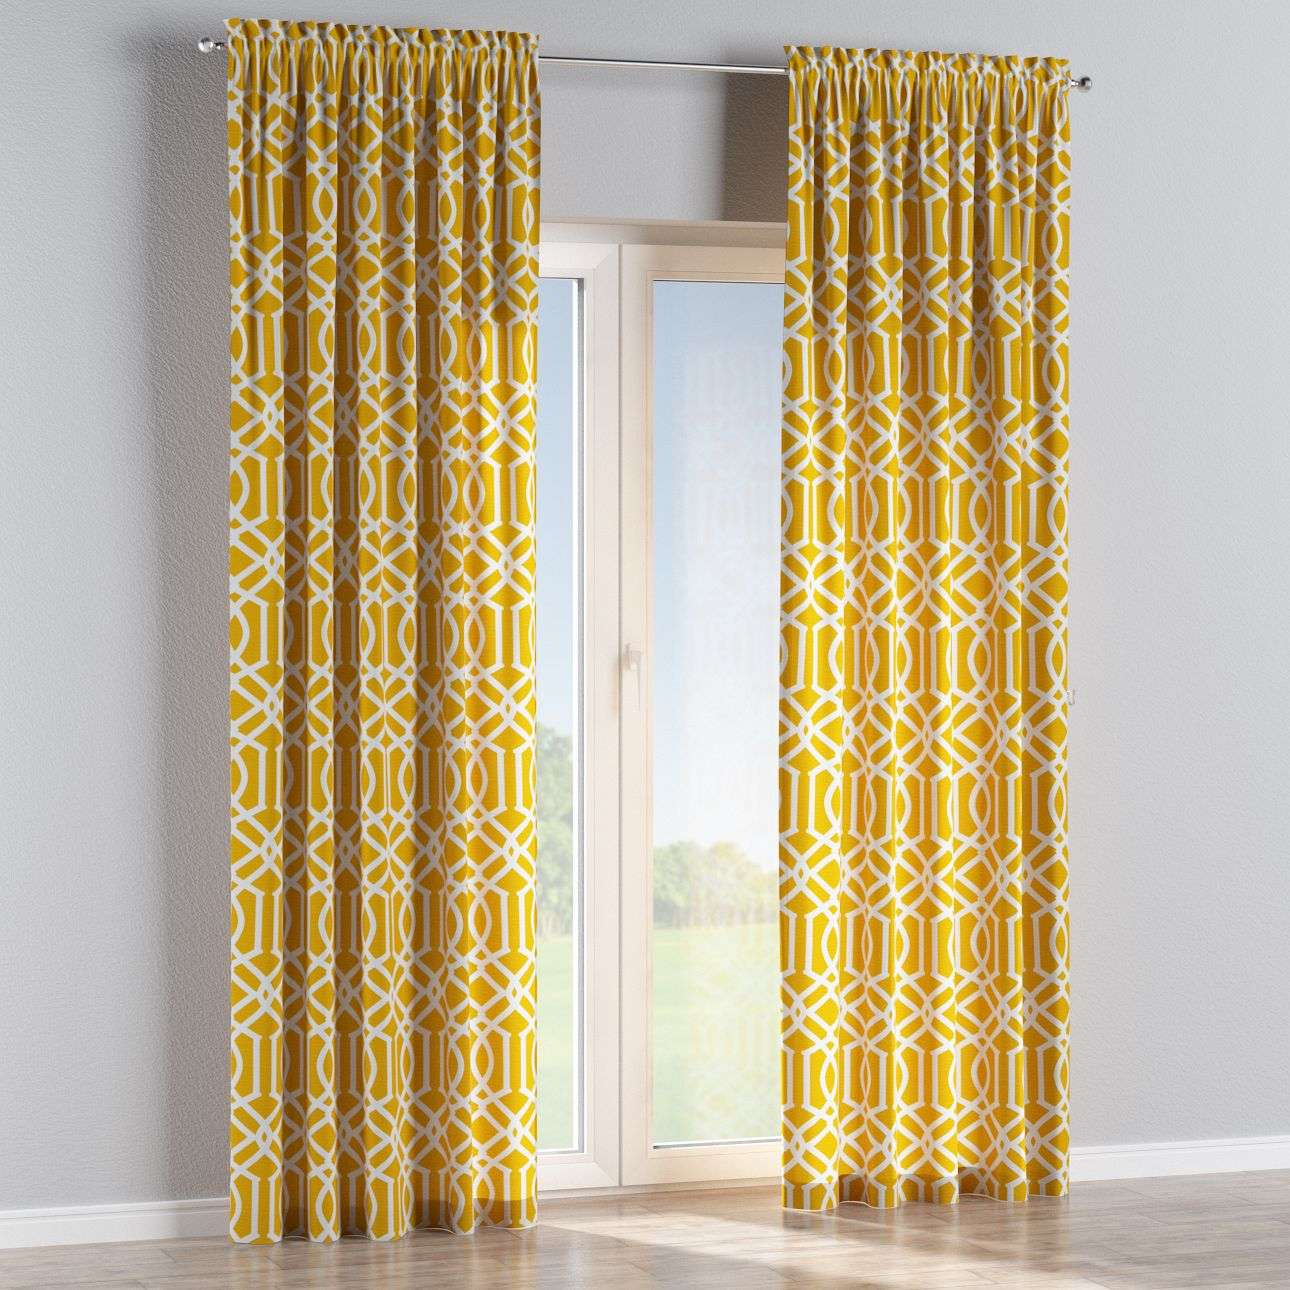 Slot and frill curtains in collection Comics/Geometrical, fabric: 135-09